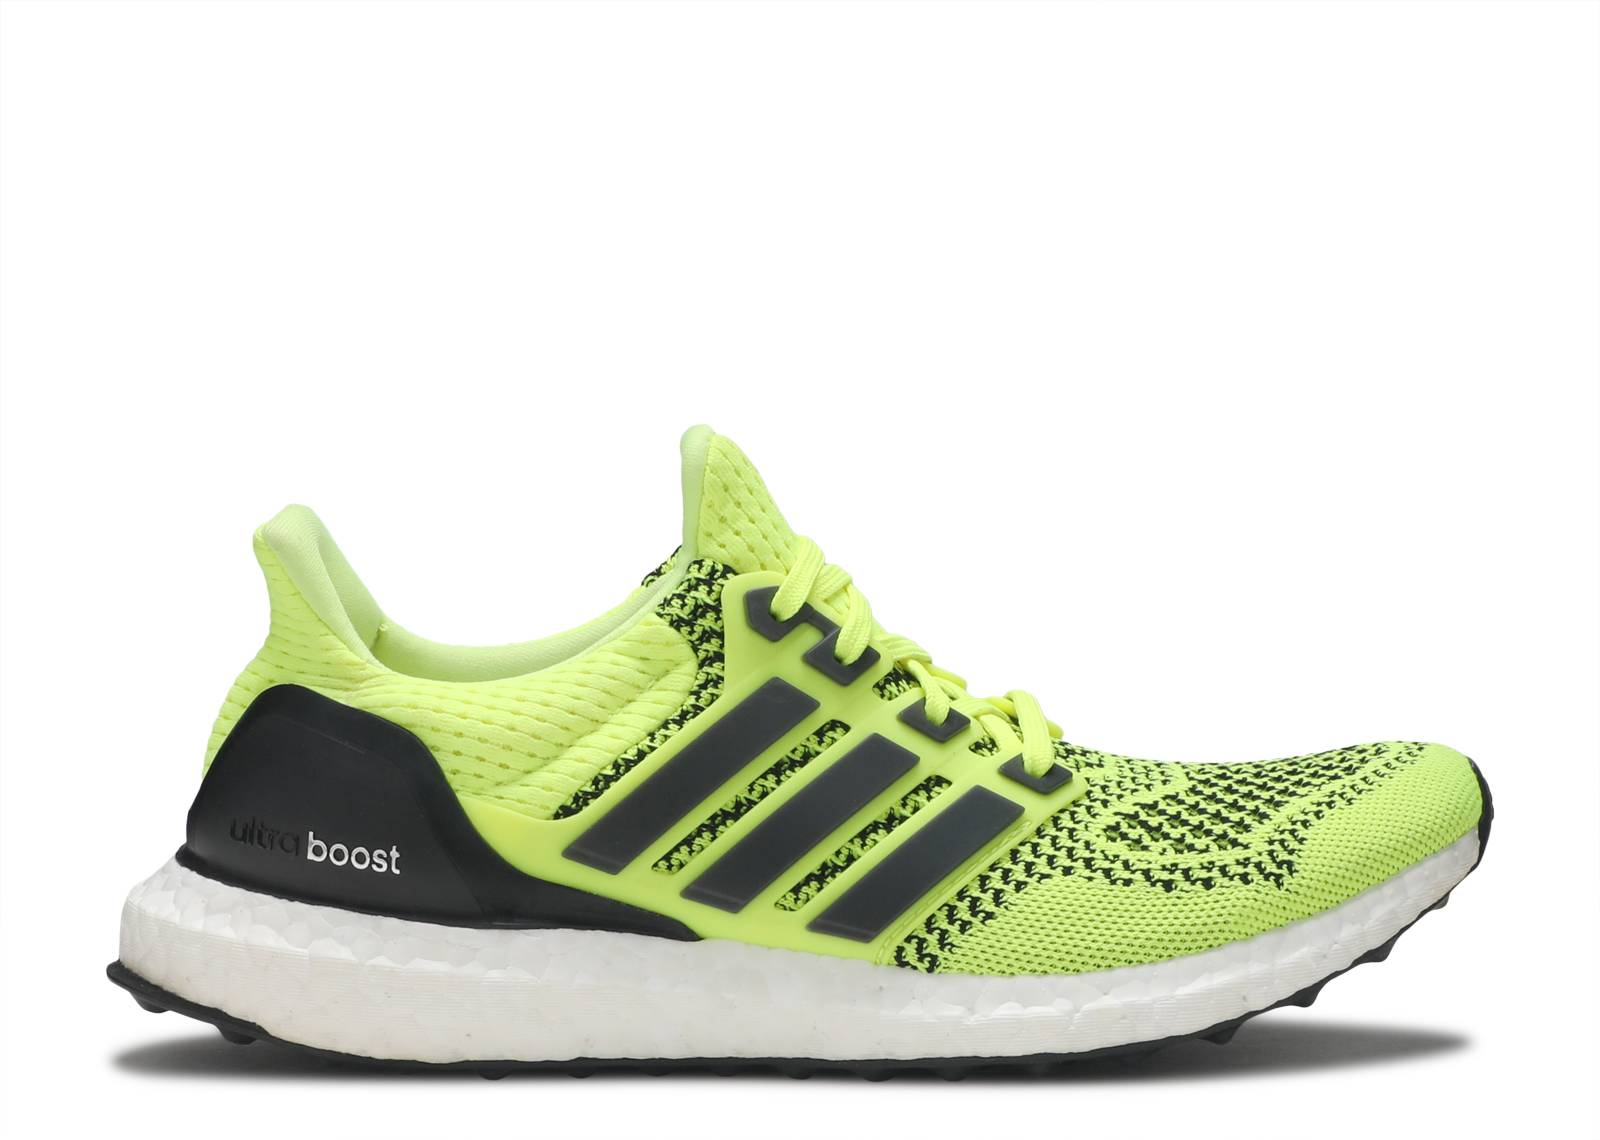 bce3c862f Ultra Boost - Adidas - s77414 - solar yellow core black